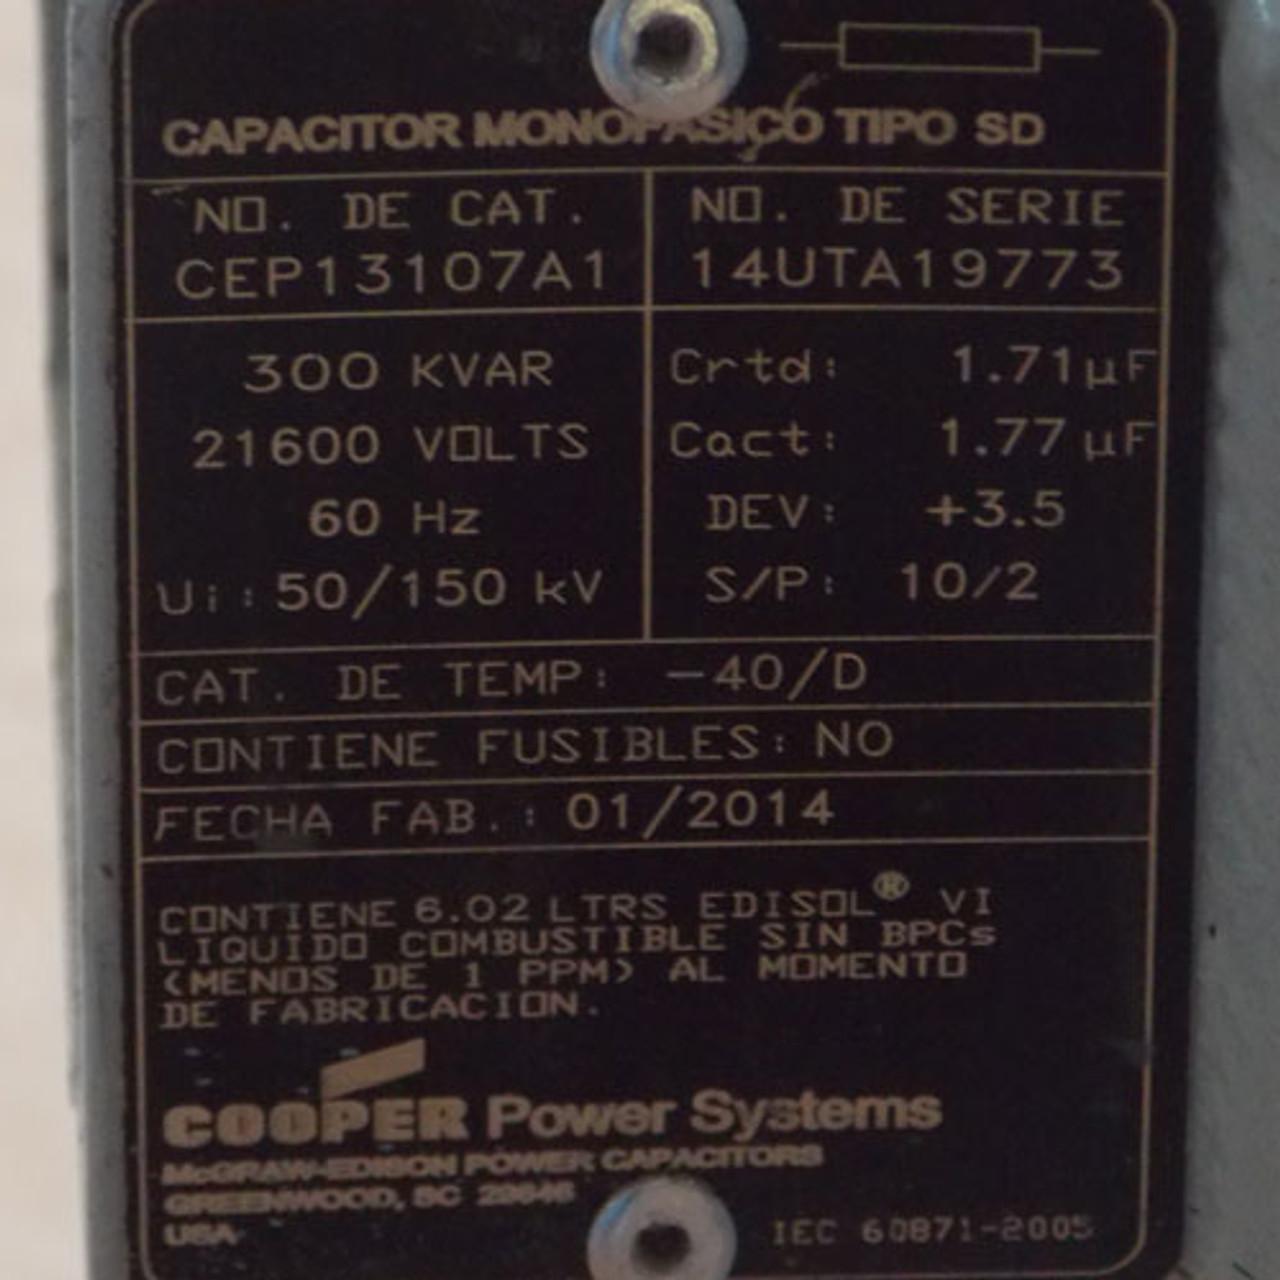 Cooper Power Systems CEP13107A1 300 KVAR 21600V Capacitor - New